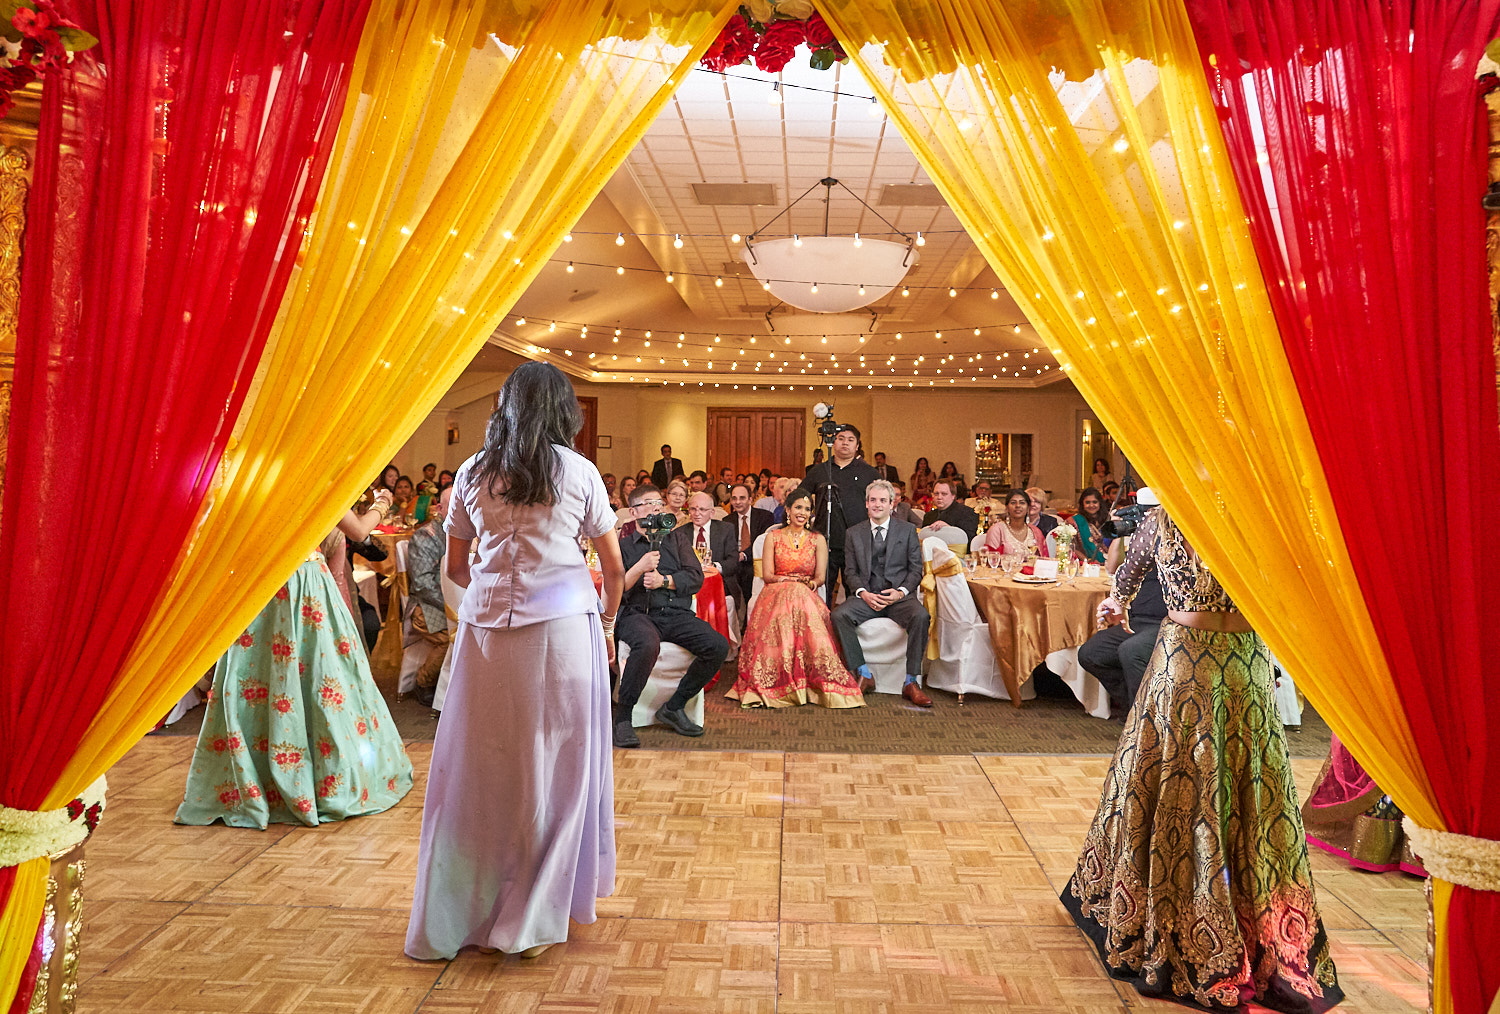 saratoga-country-club-wedding-reception-photography-by-afewgoodclicks-at 116.jpg